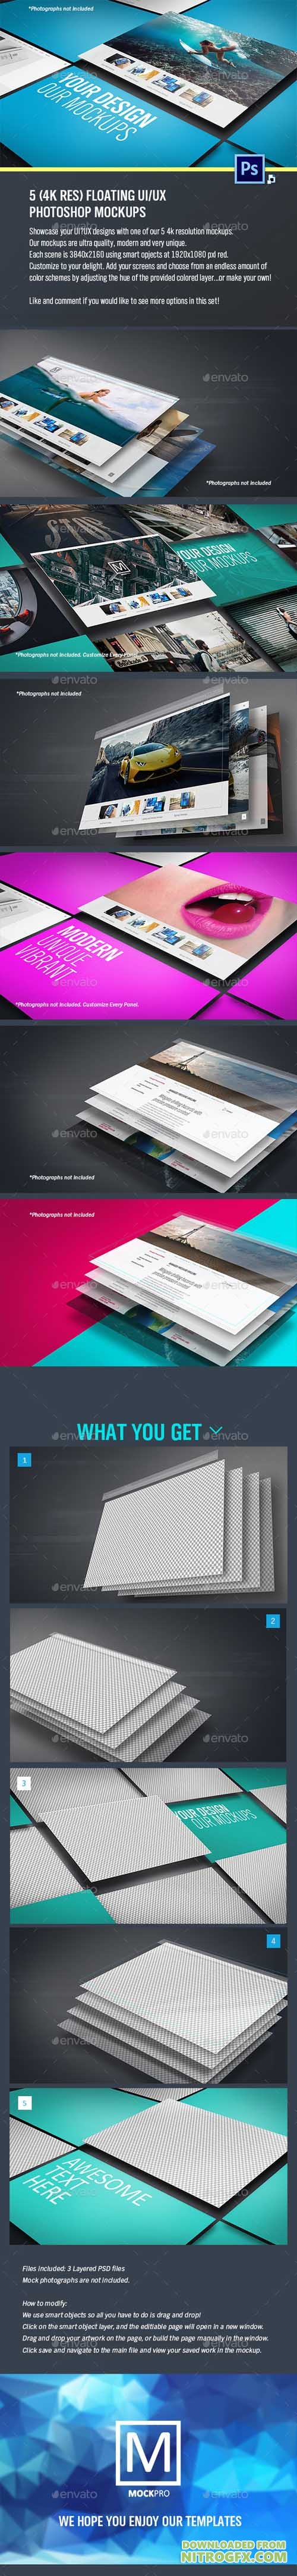 5 Floating UI/UX Photoshop Mockups (4K Res) 20763379